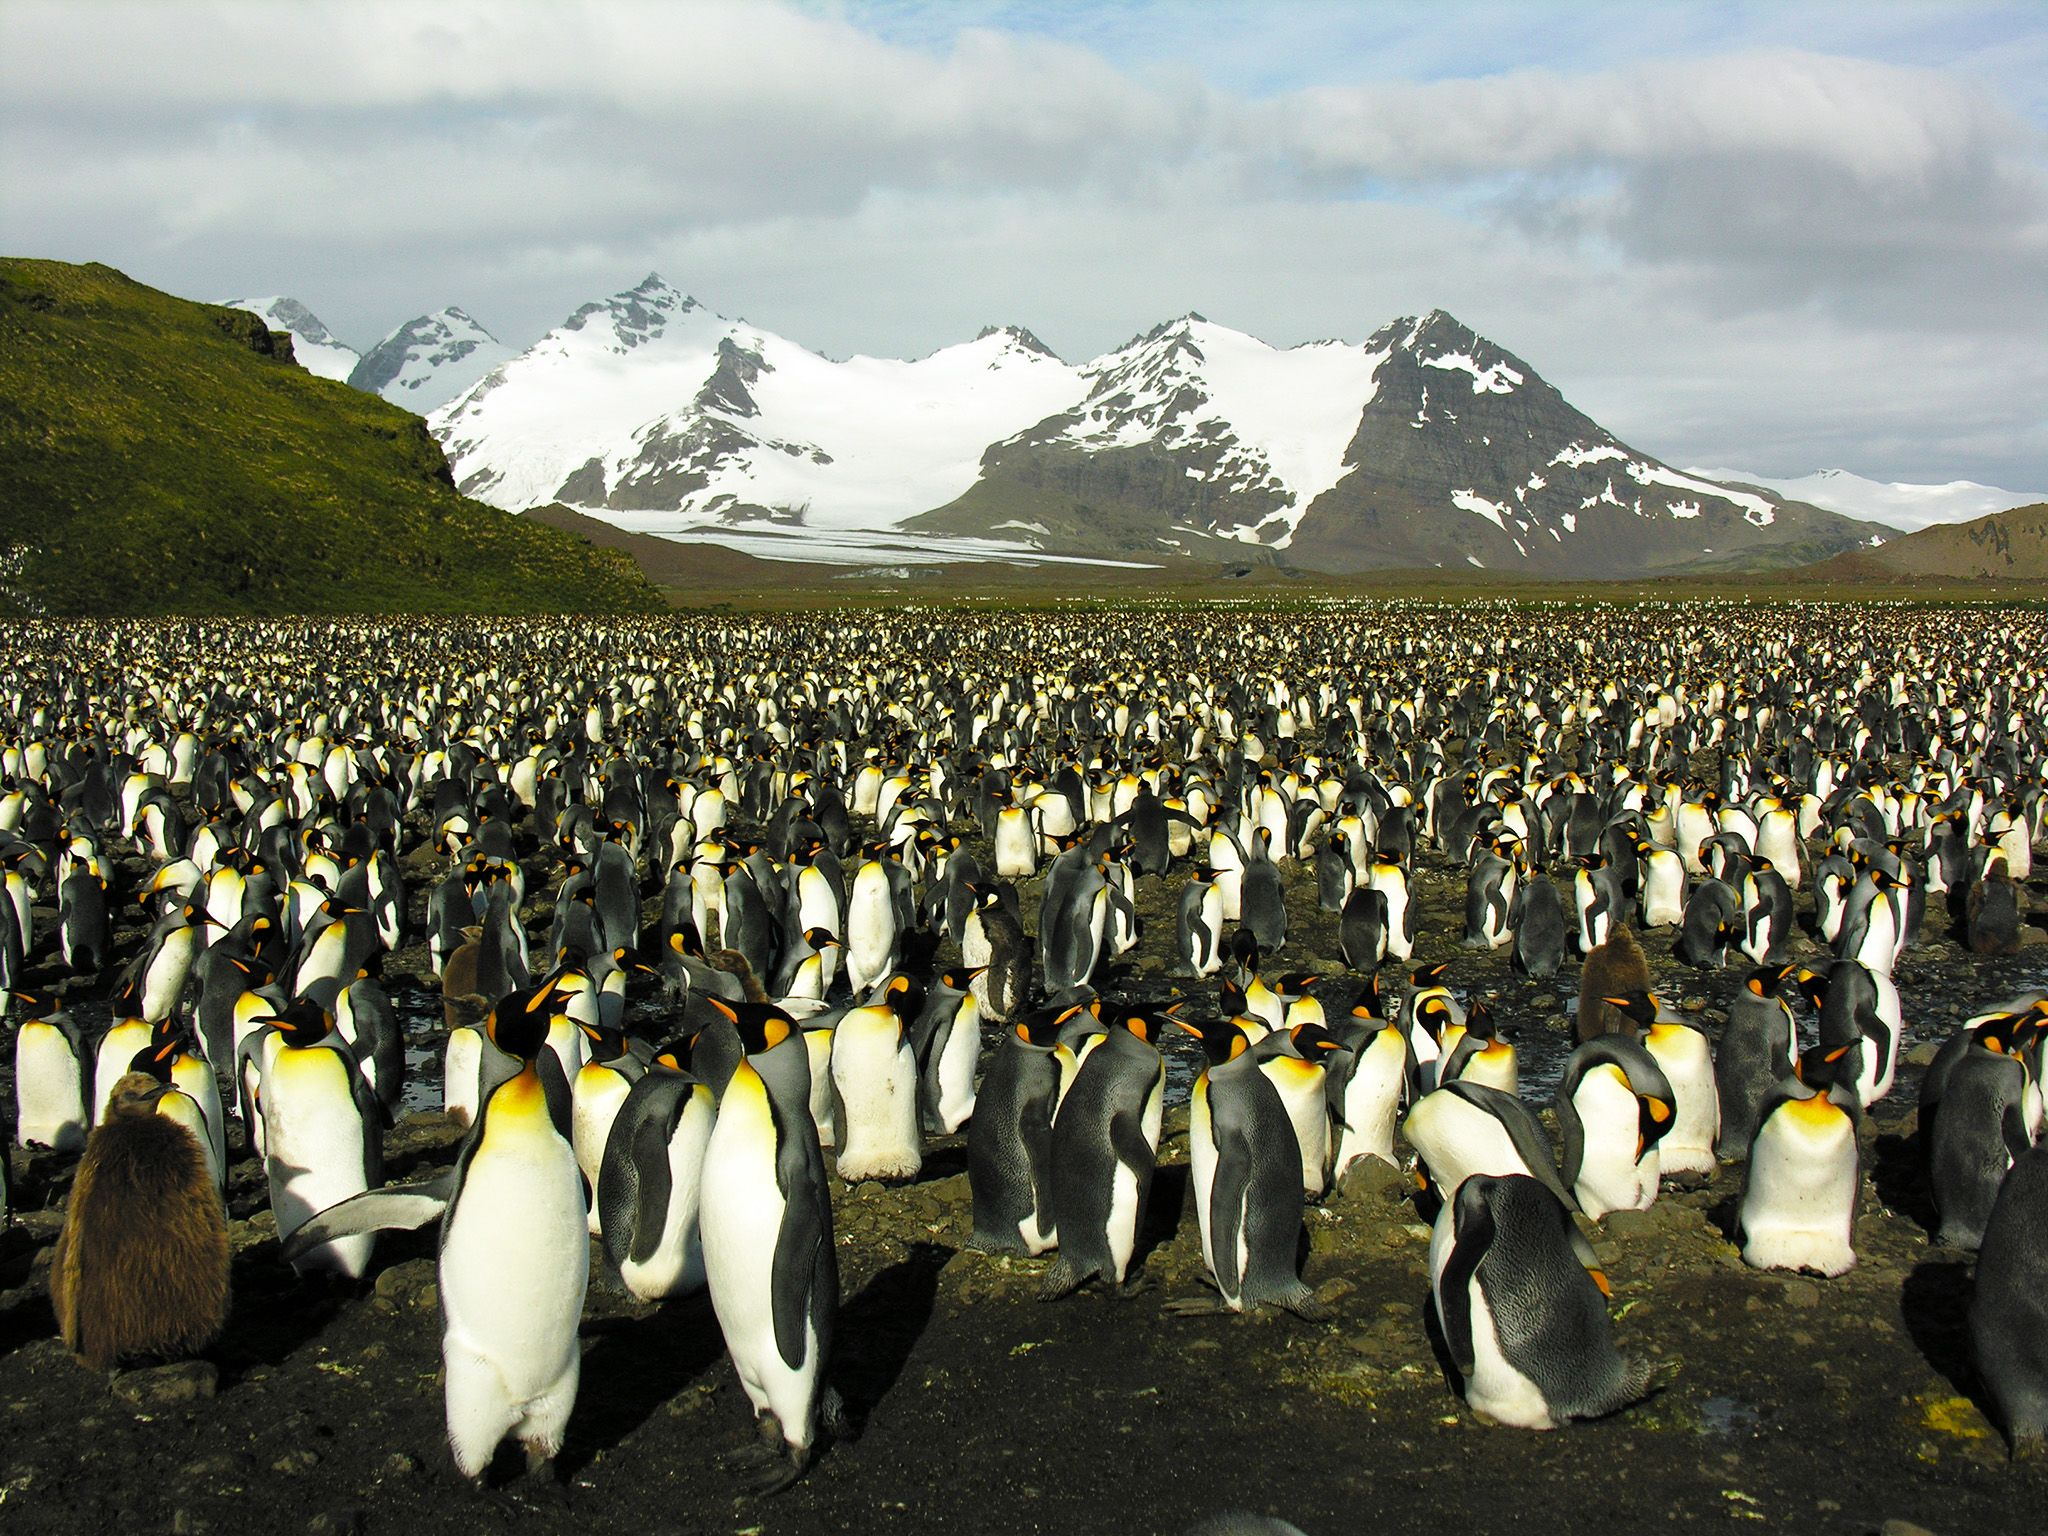 South Georgia: A great number of King Penguins in South Georgia, with snow-capped mountains and... [Photo of the day - October 2015]